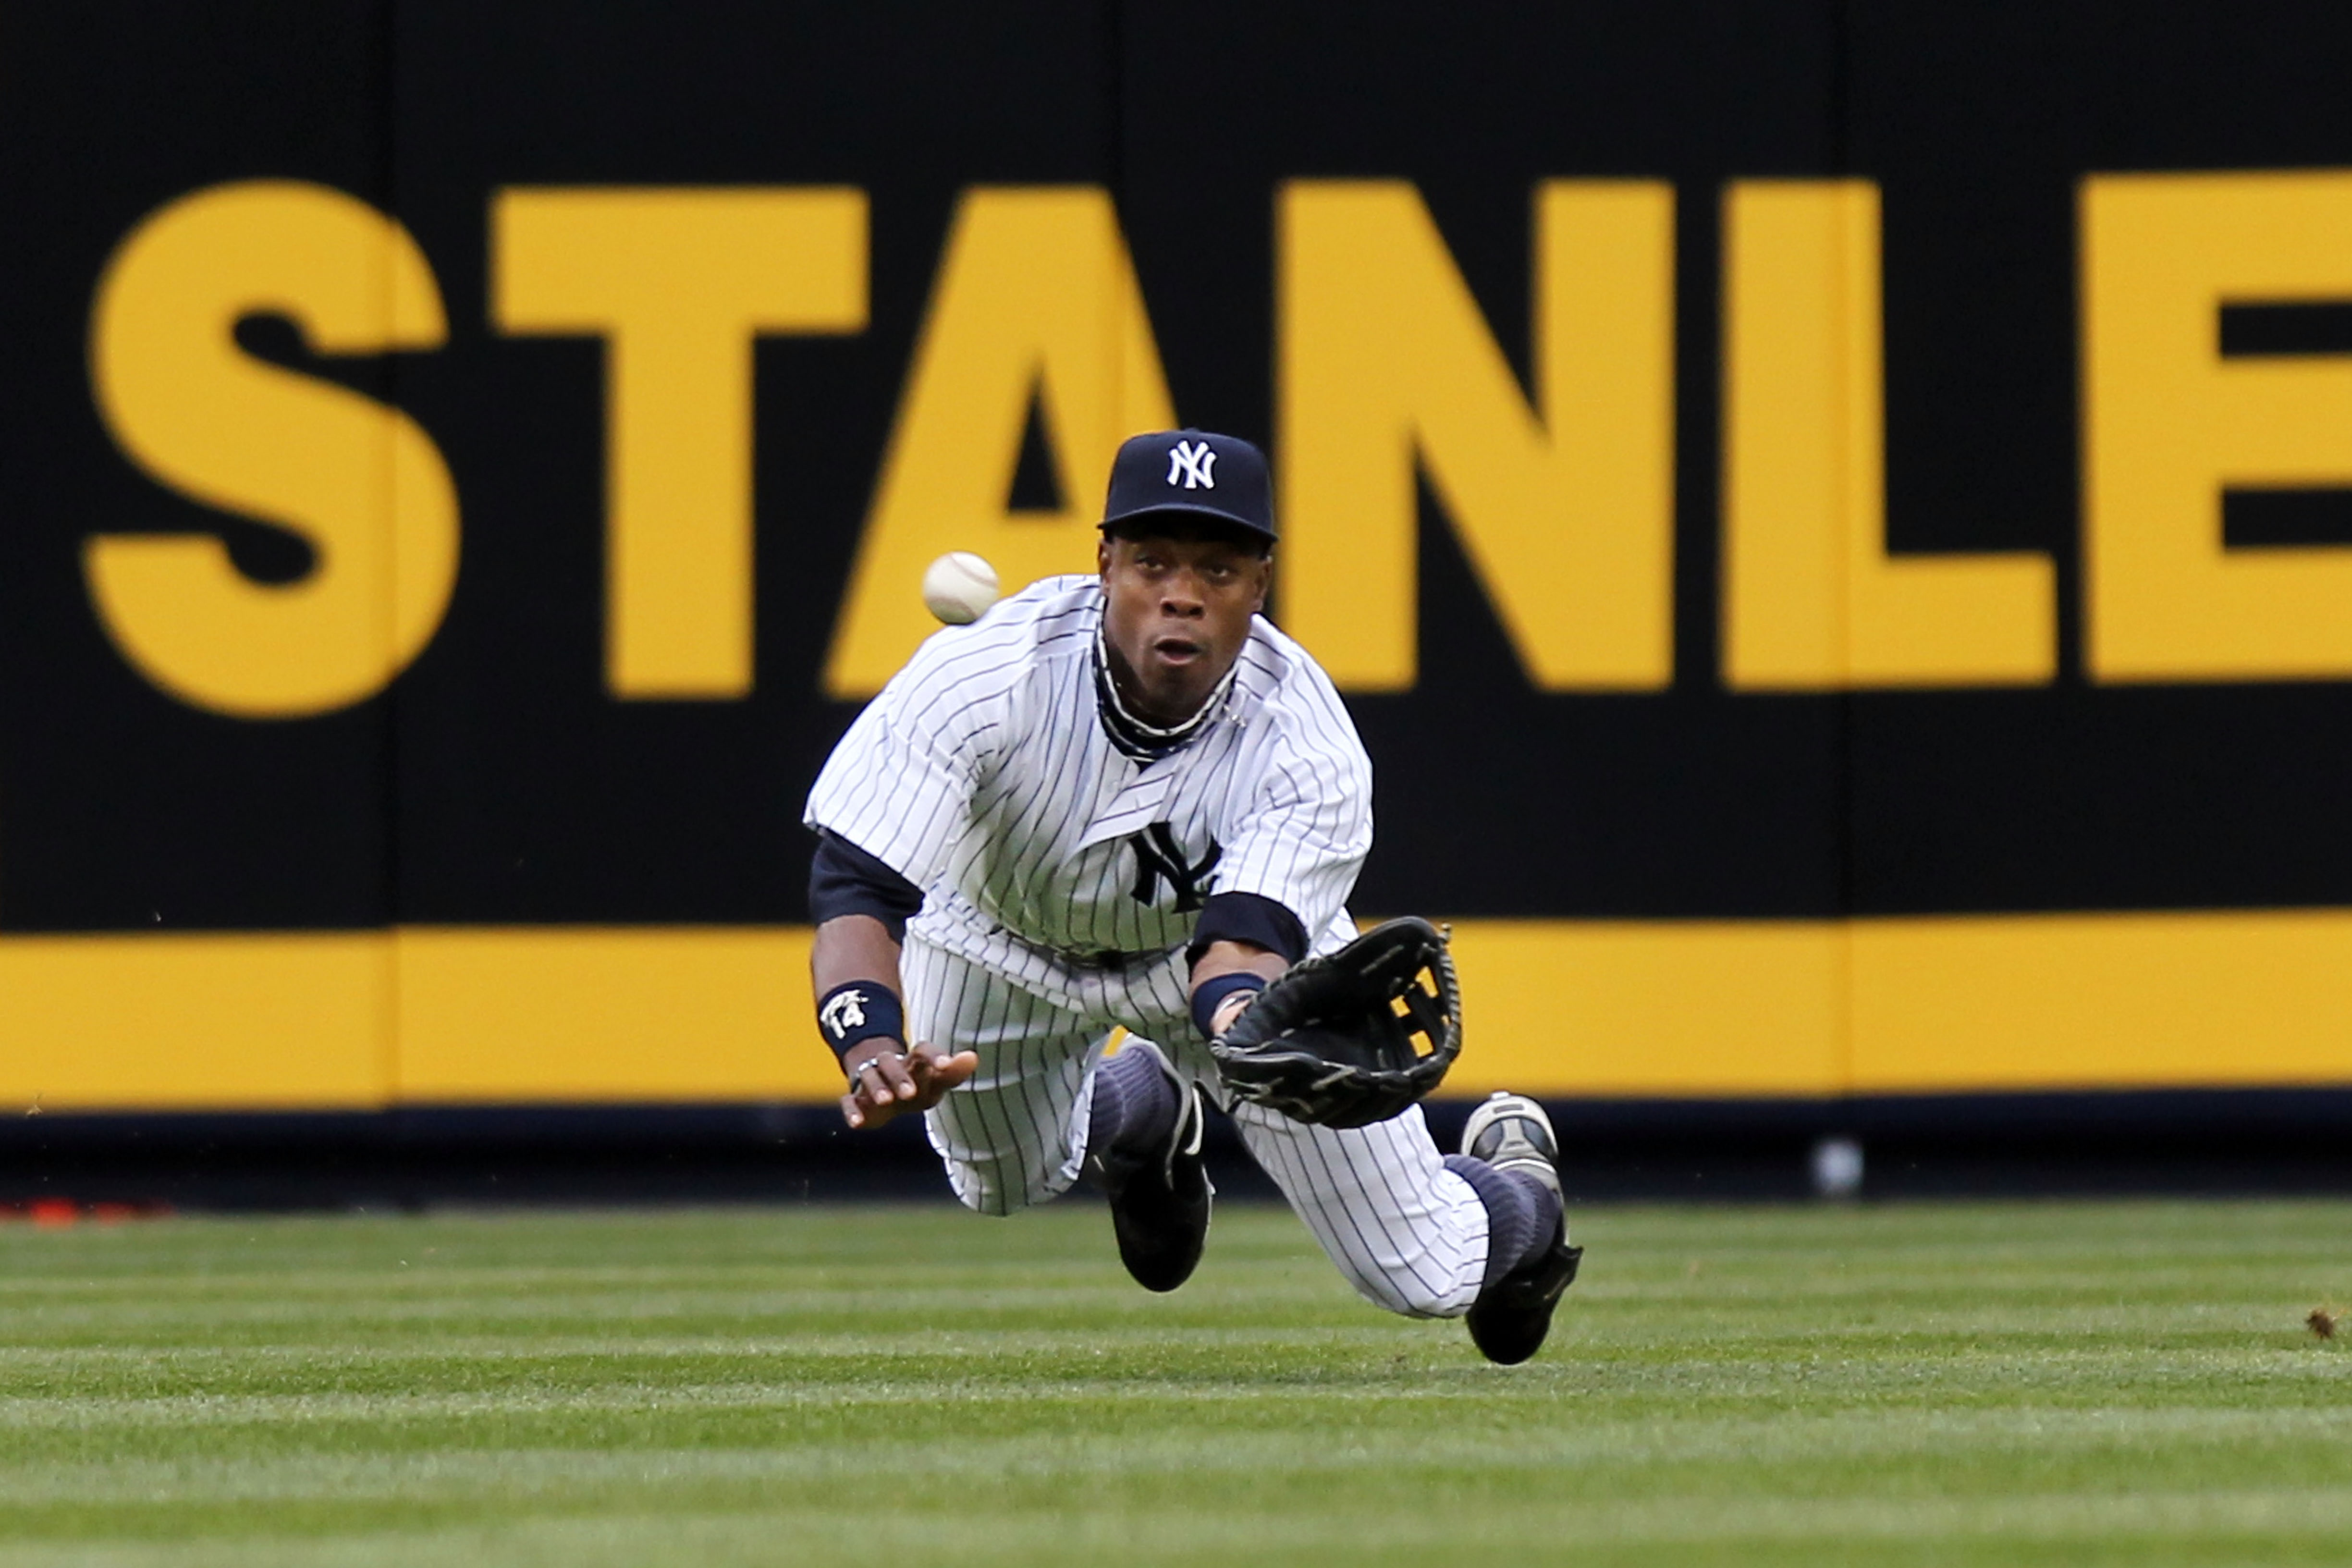 NEW YORK, NY - MARCH 31:  Curtis Granderson #14 of the New York Yankees dives to catch the ball for an out in the first inning against the Detroit Tigers on Opening Day at Yankee Stadium on March 31, 2011 in the Bronx borough of New York City. (Photo by N